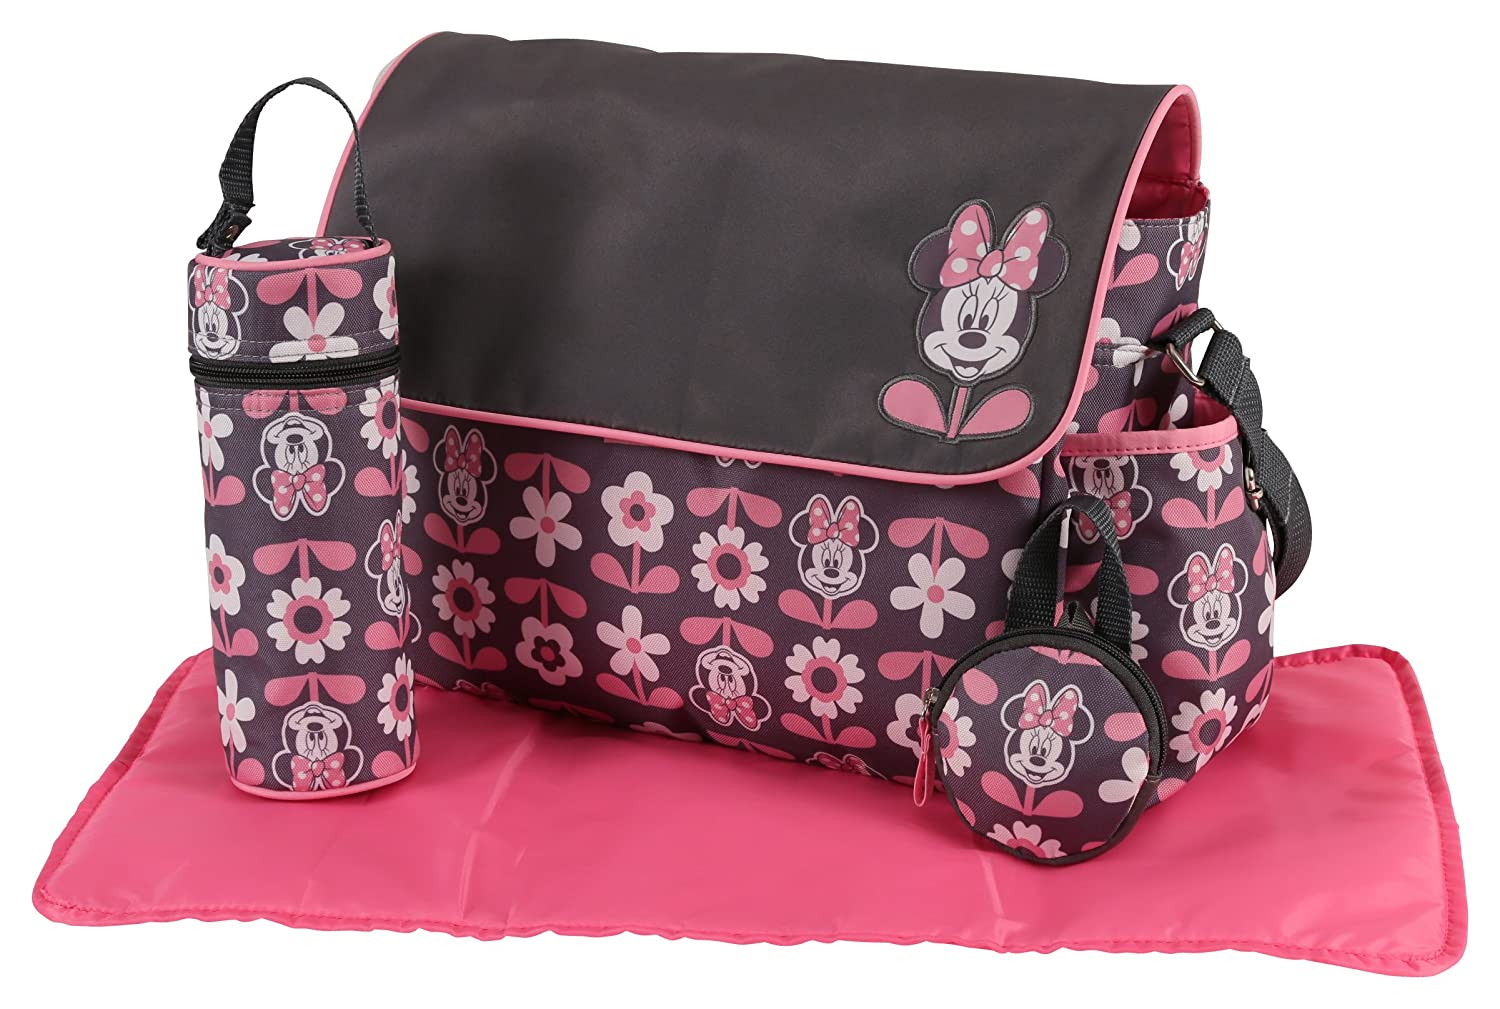 Disney Minnie Mouse Multi Piece Diaper Bag with Flap, Floral Print, Gray/Pink Cudlie Accessories DB30349-013-GRY